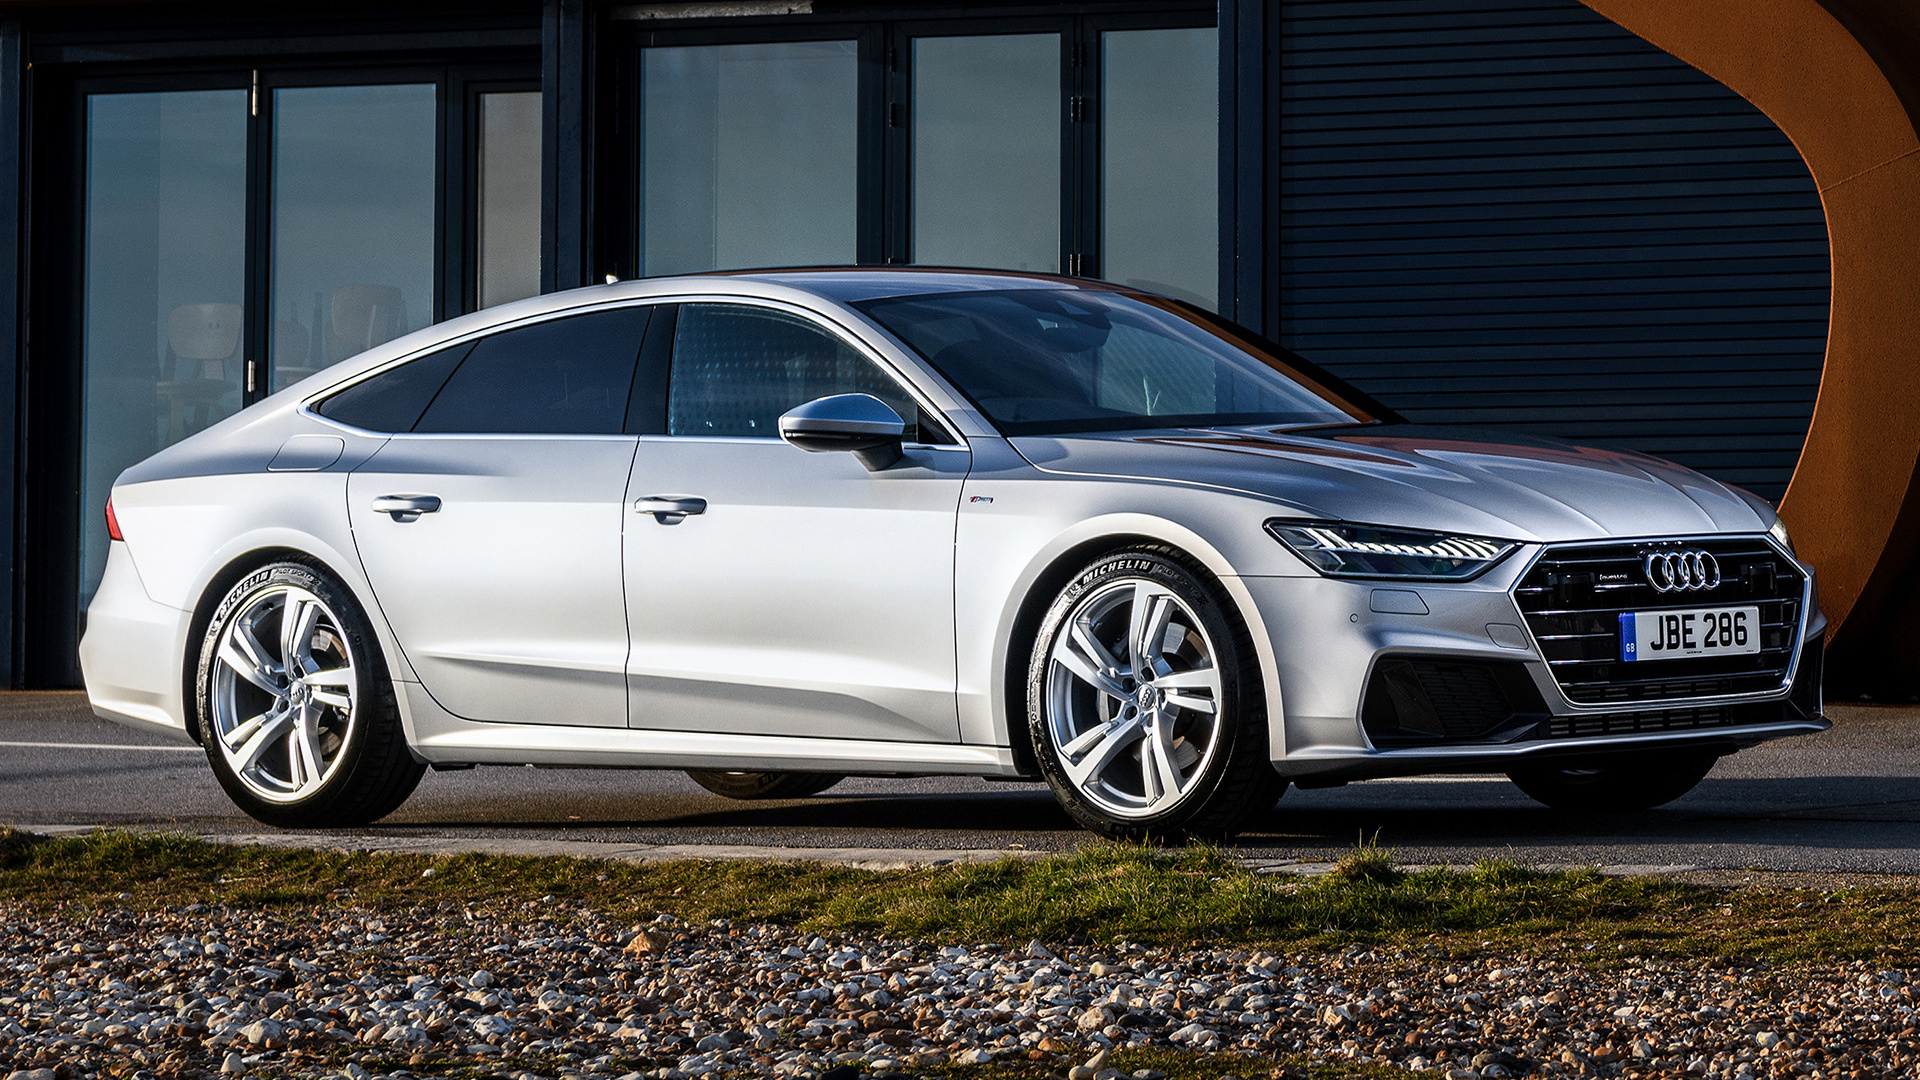 2018 Audi A7 Sportback S line (UK) - Wallpapers and HD ...